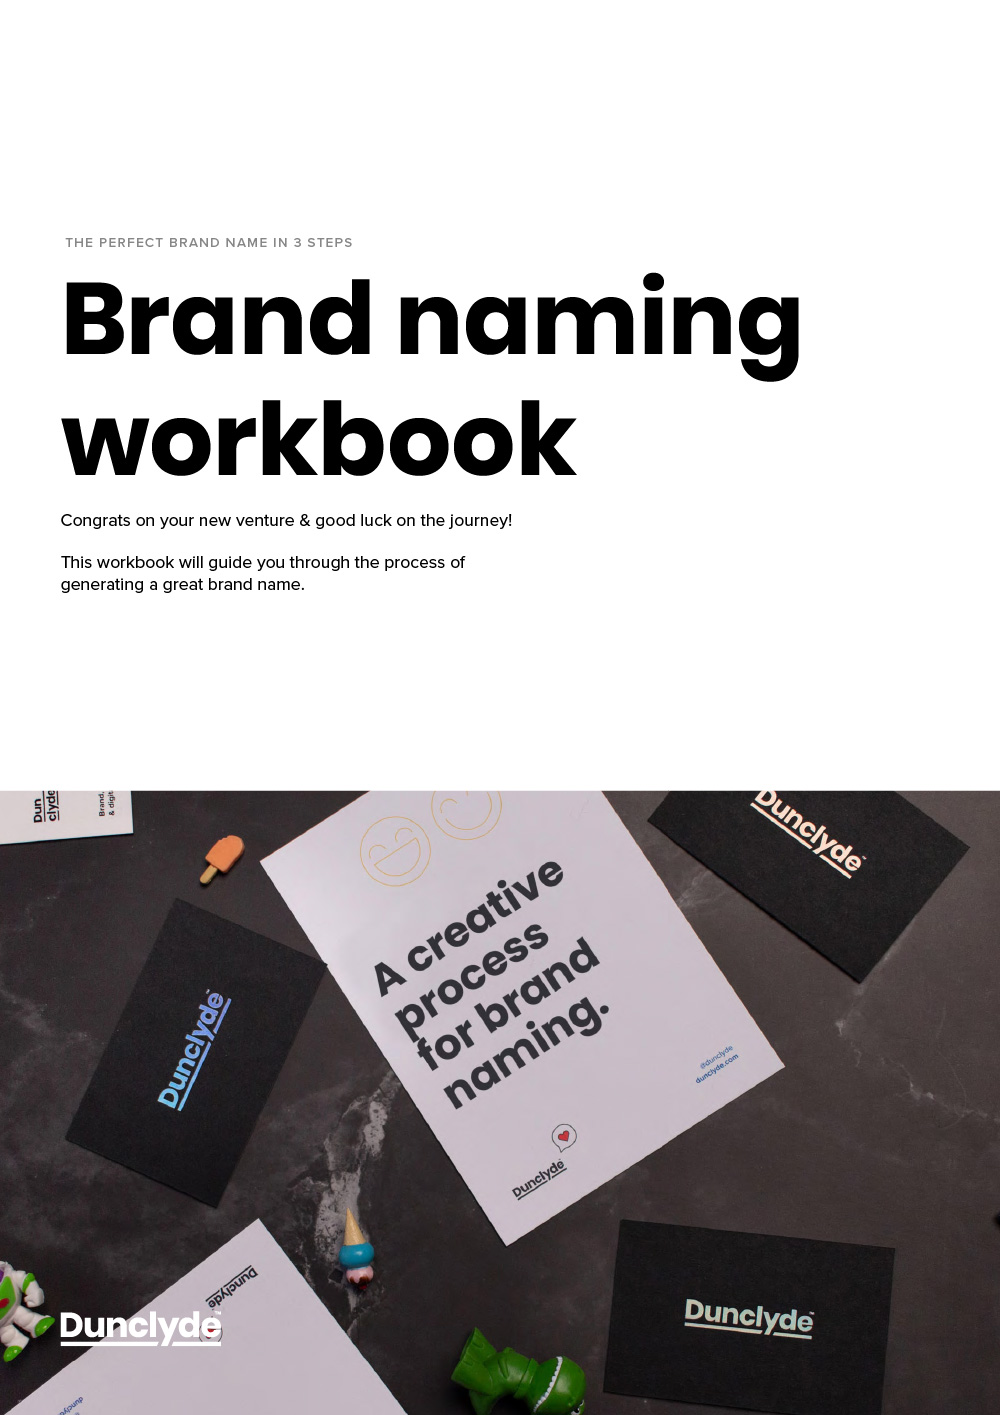 Brand naming workbook cover